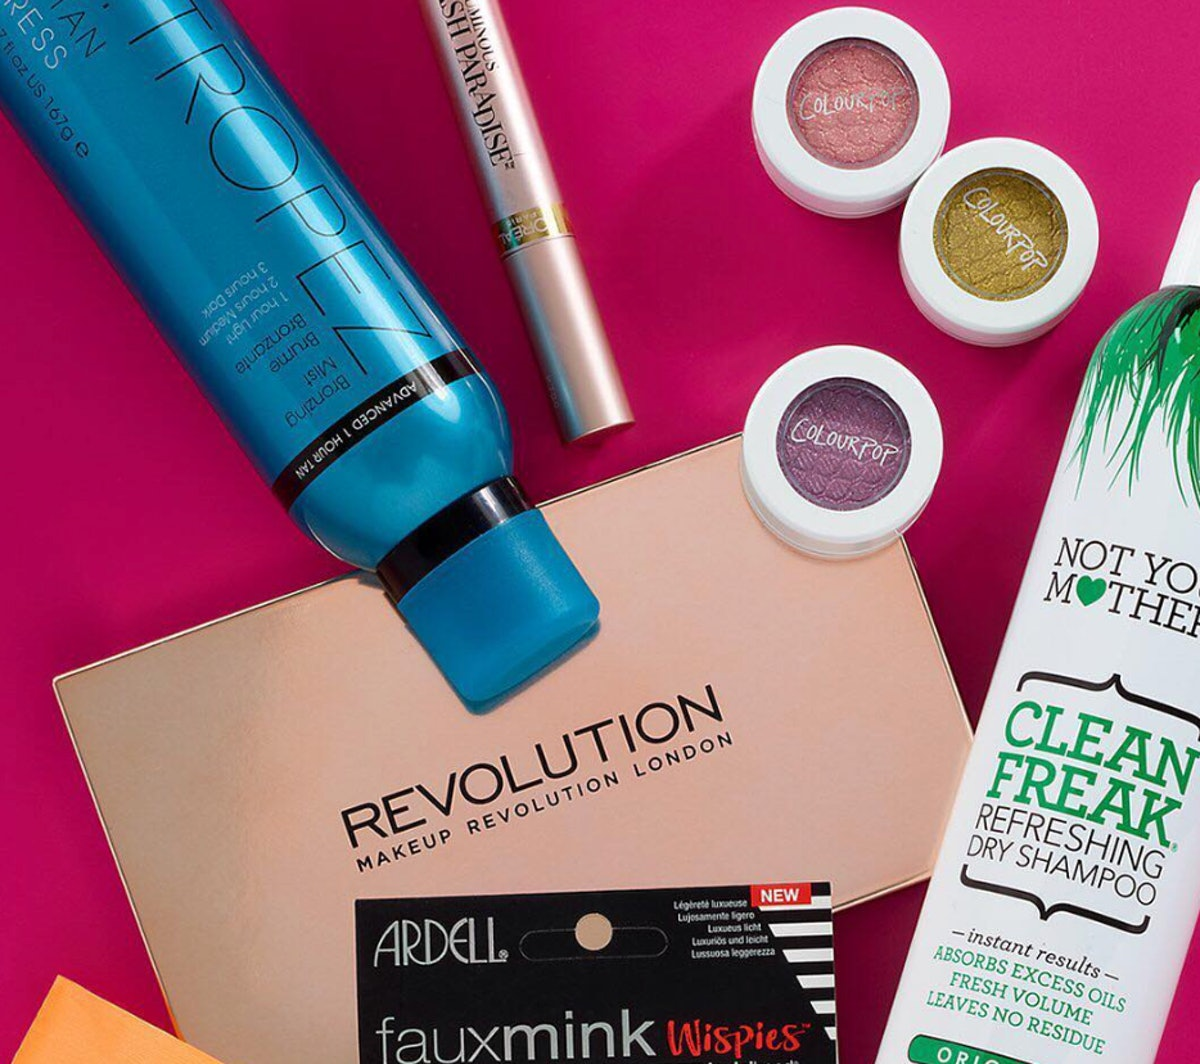 Ulta's Spring 2019 Haul Sale Includes 40% Off Winky Lux, Morphe, & Burt's Bees Products